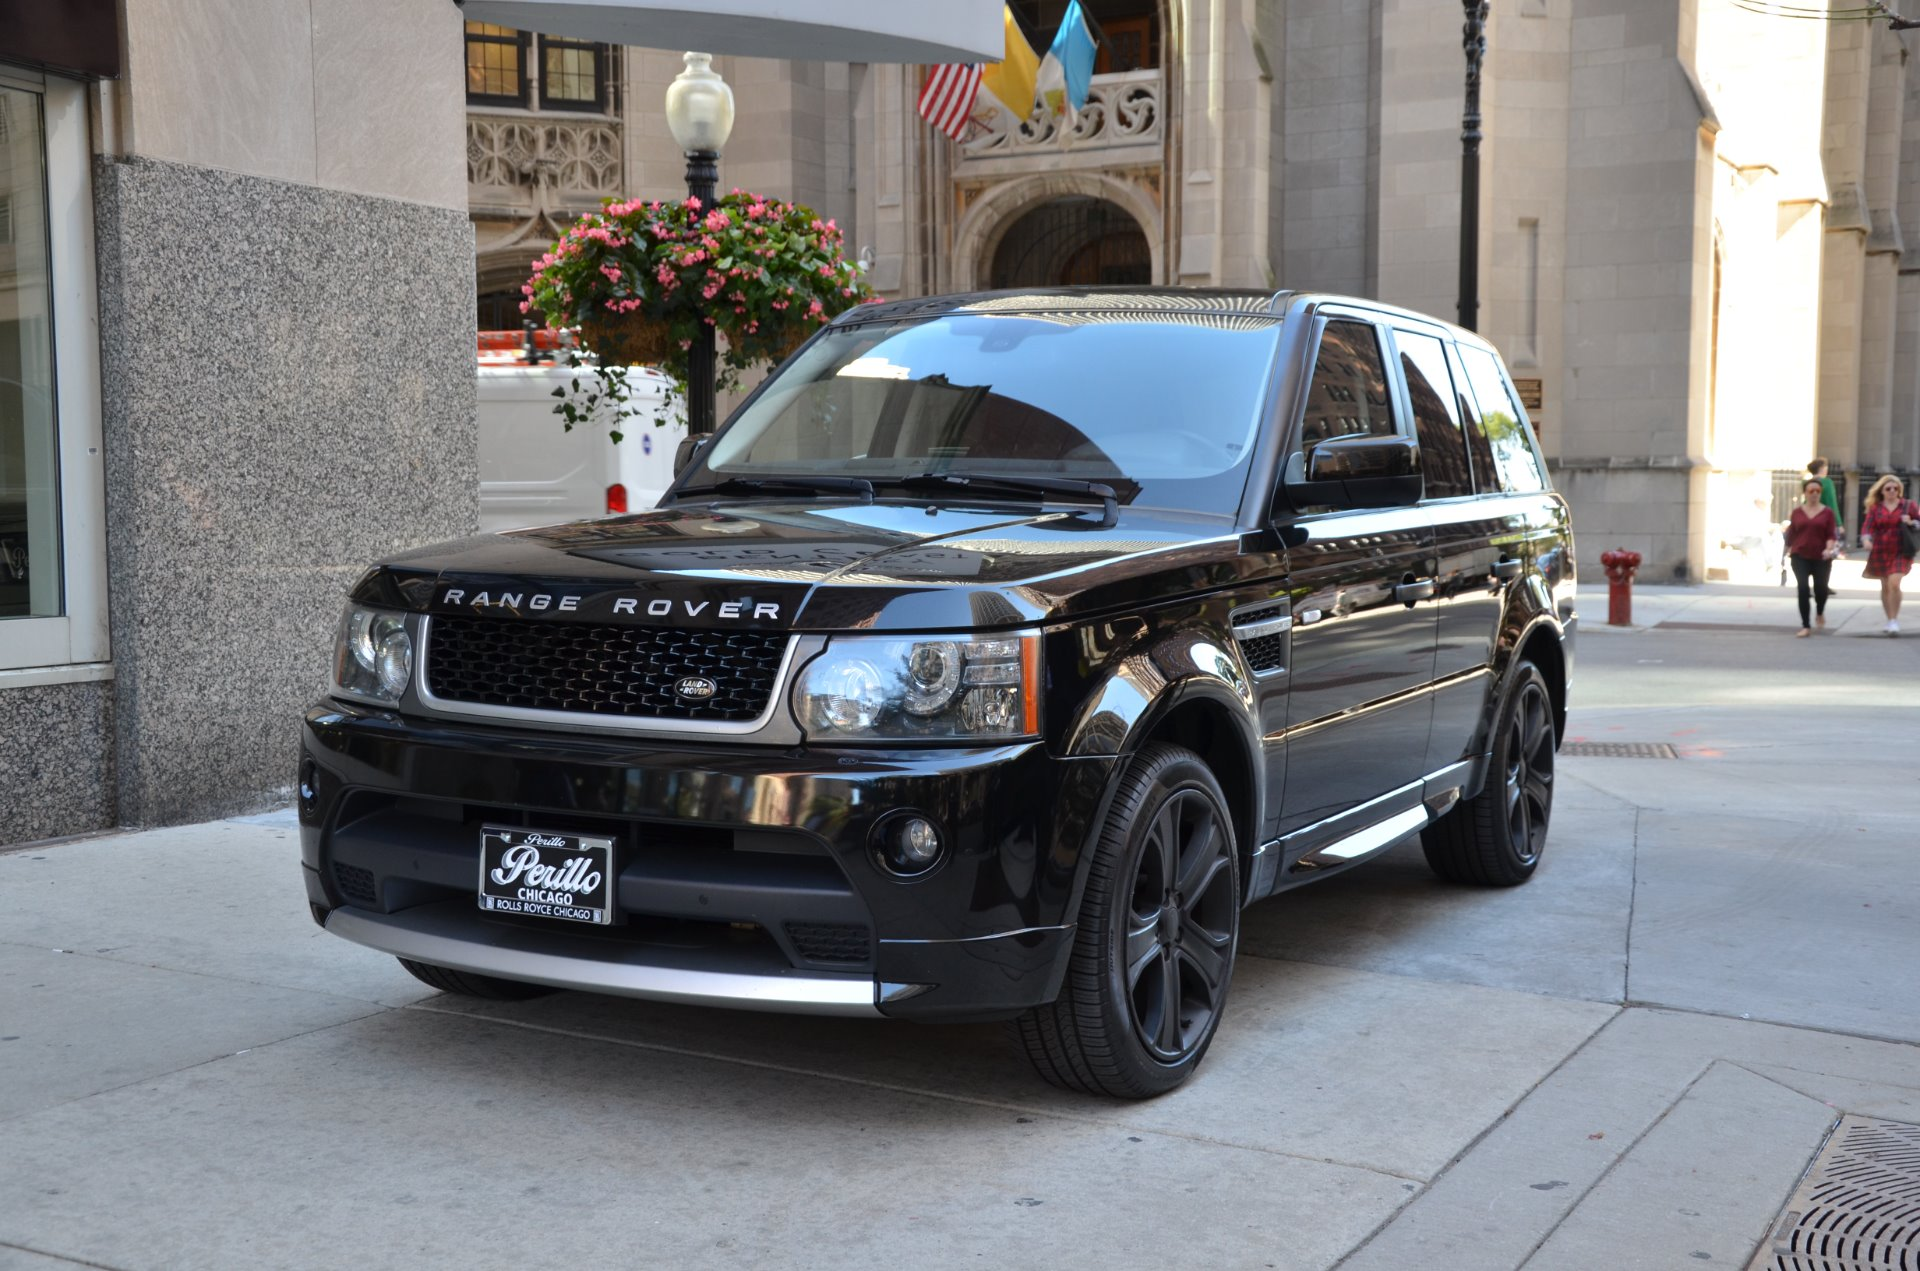 2011 Land Rover Range Rover Sport HSE Stock B812AA for sale near